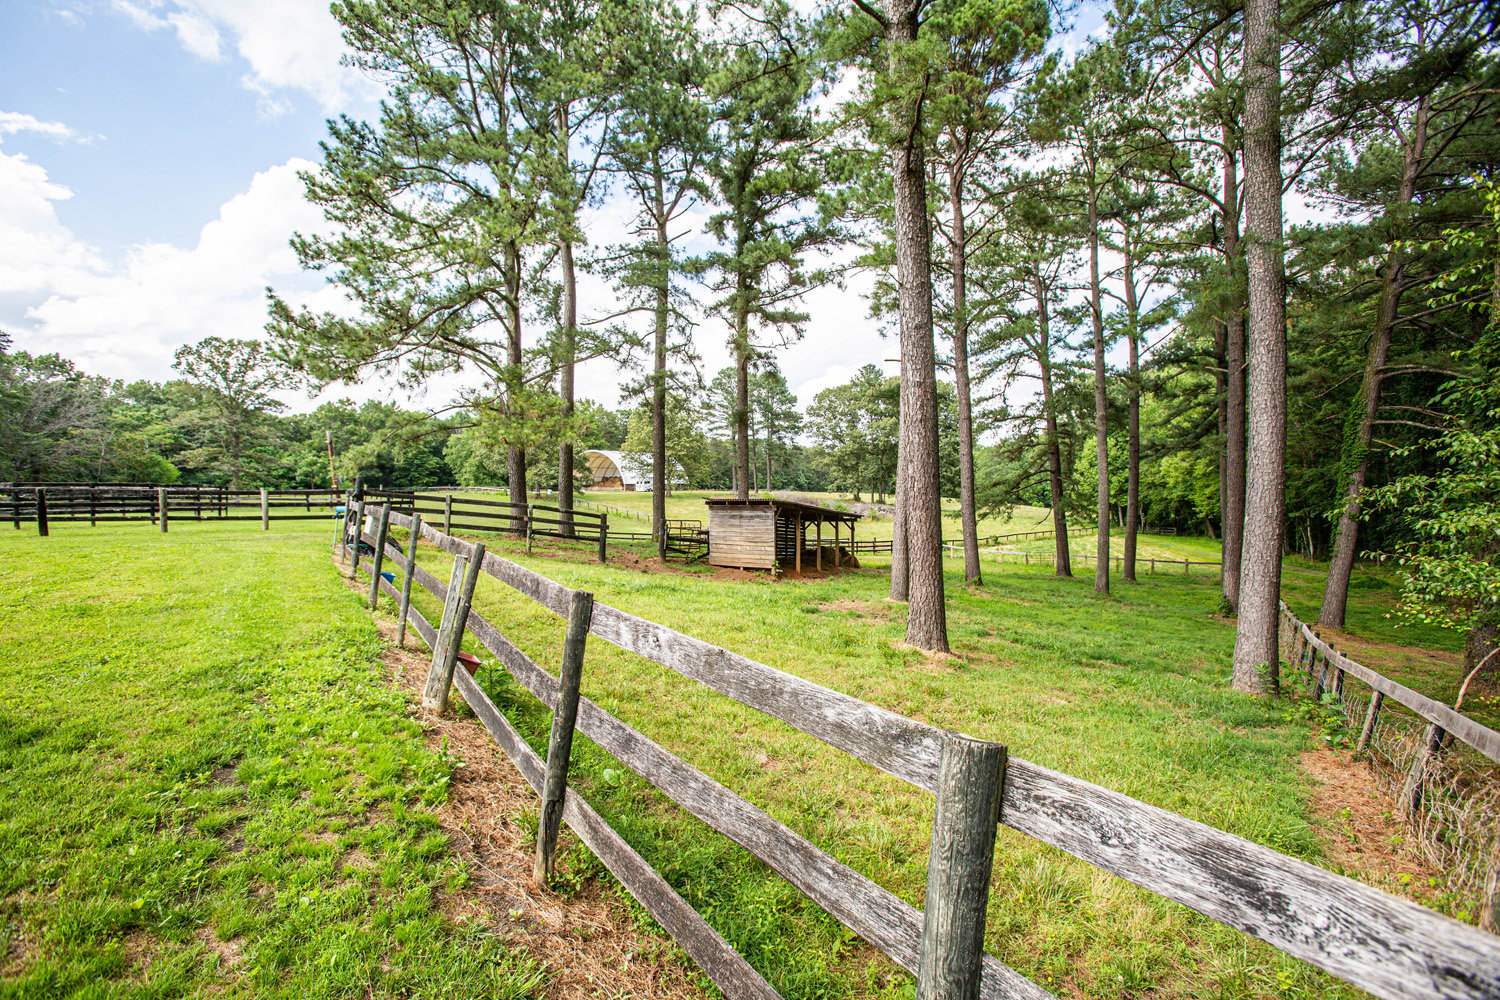 Image for 3 BR/2.5 BA Home w/13 Stall Barn, Outbuildings & Greenhouse on 5.47 +/- Acres in Orange County, VA